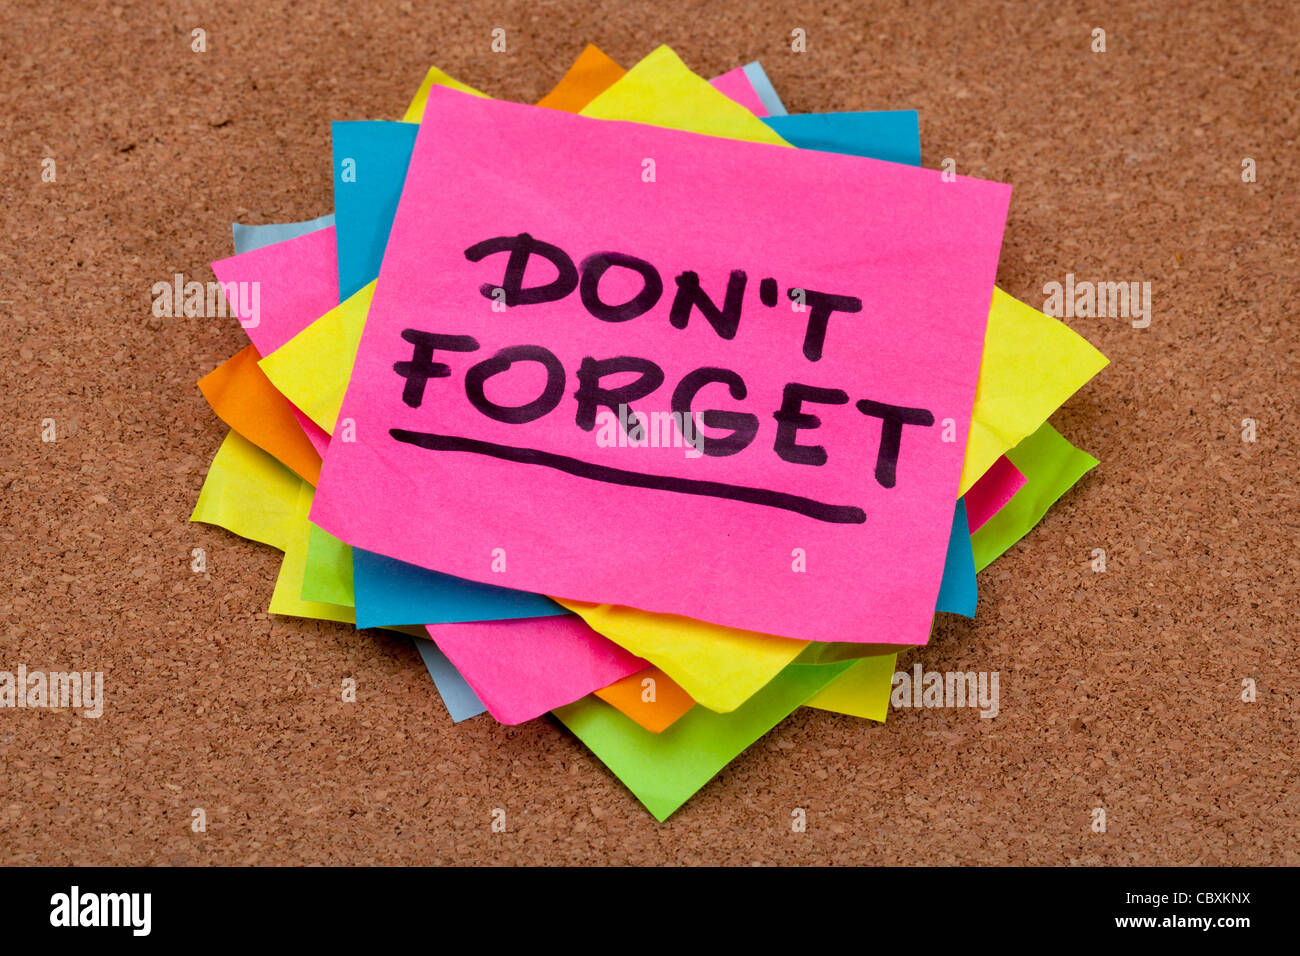 do not forget reminder - a stack of colorful sticky notes on cork bulletin board - Stock Image